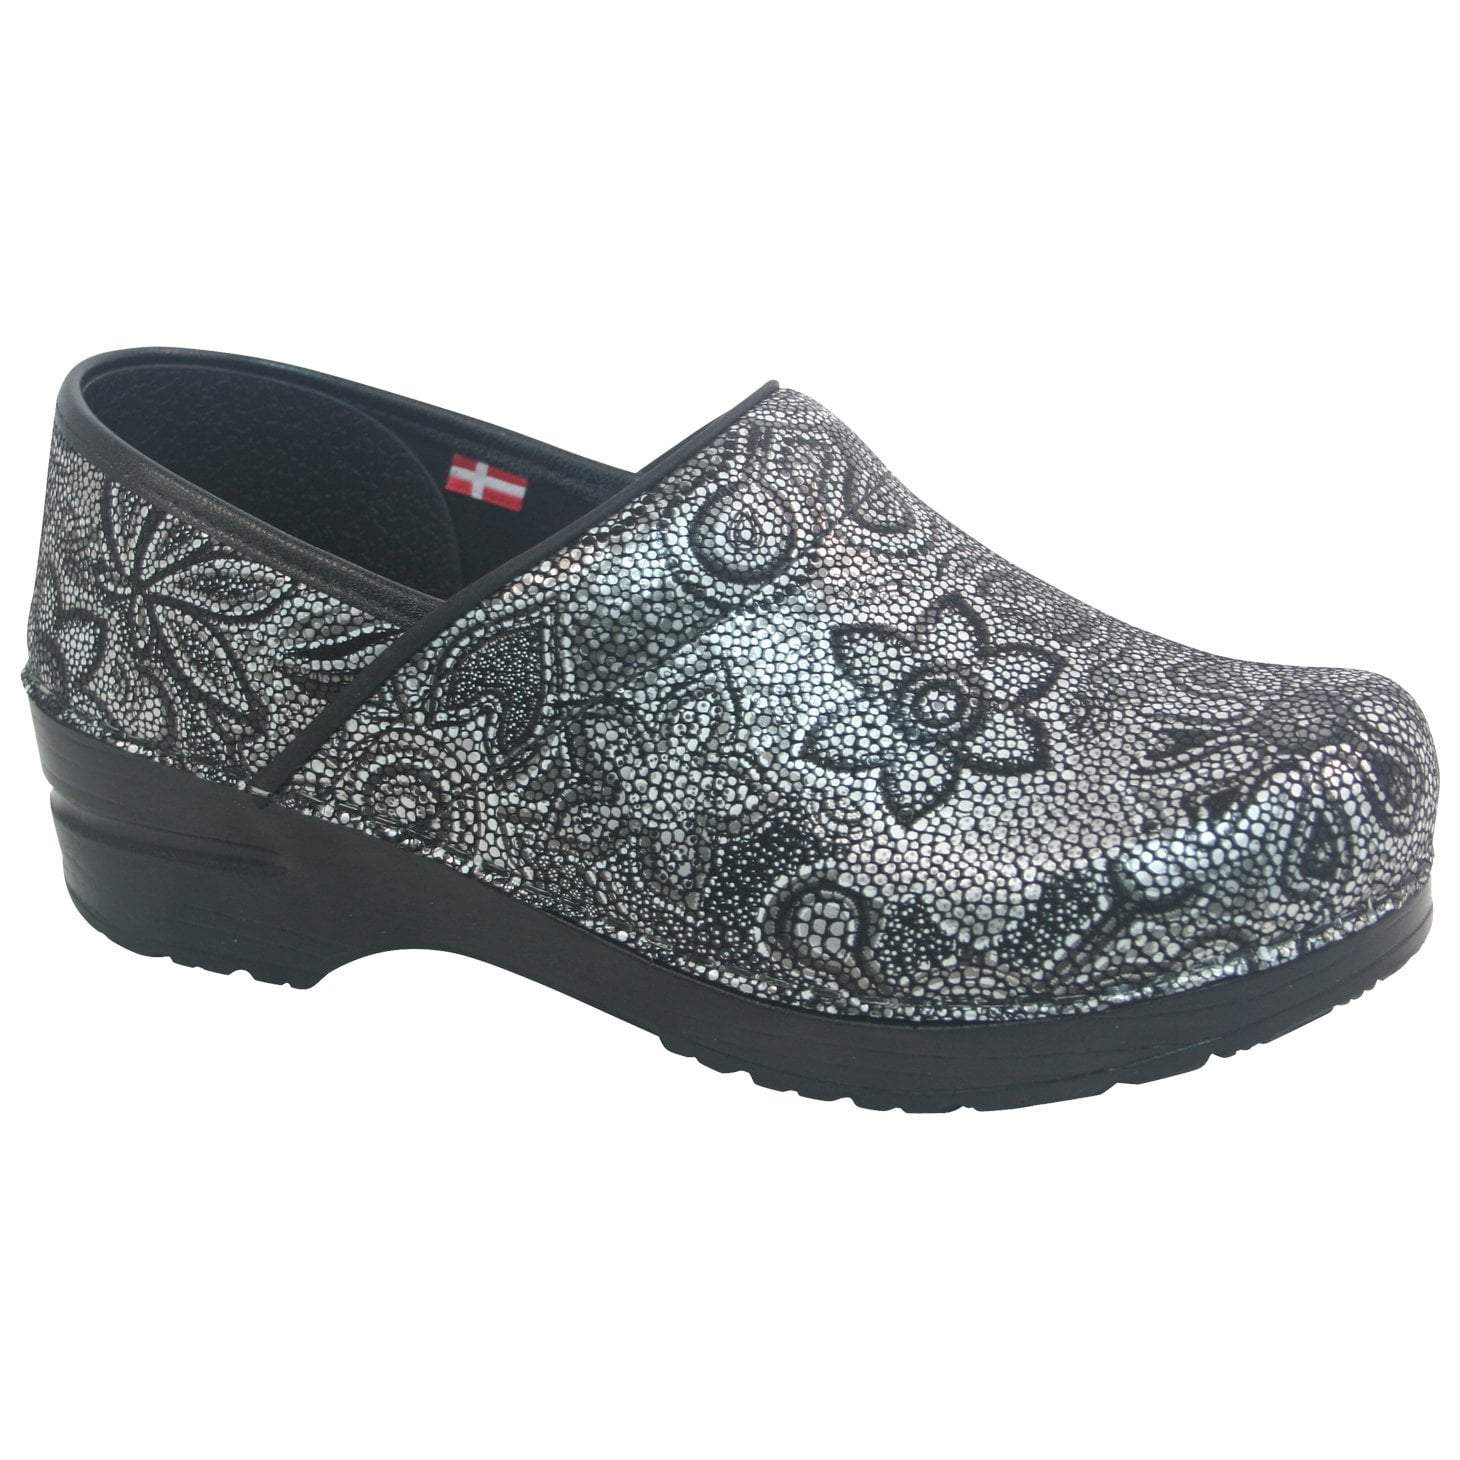 Sanita Moonflower Women's Closed Back Clog